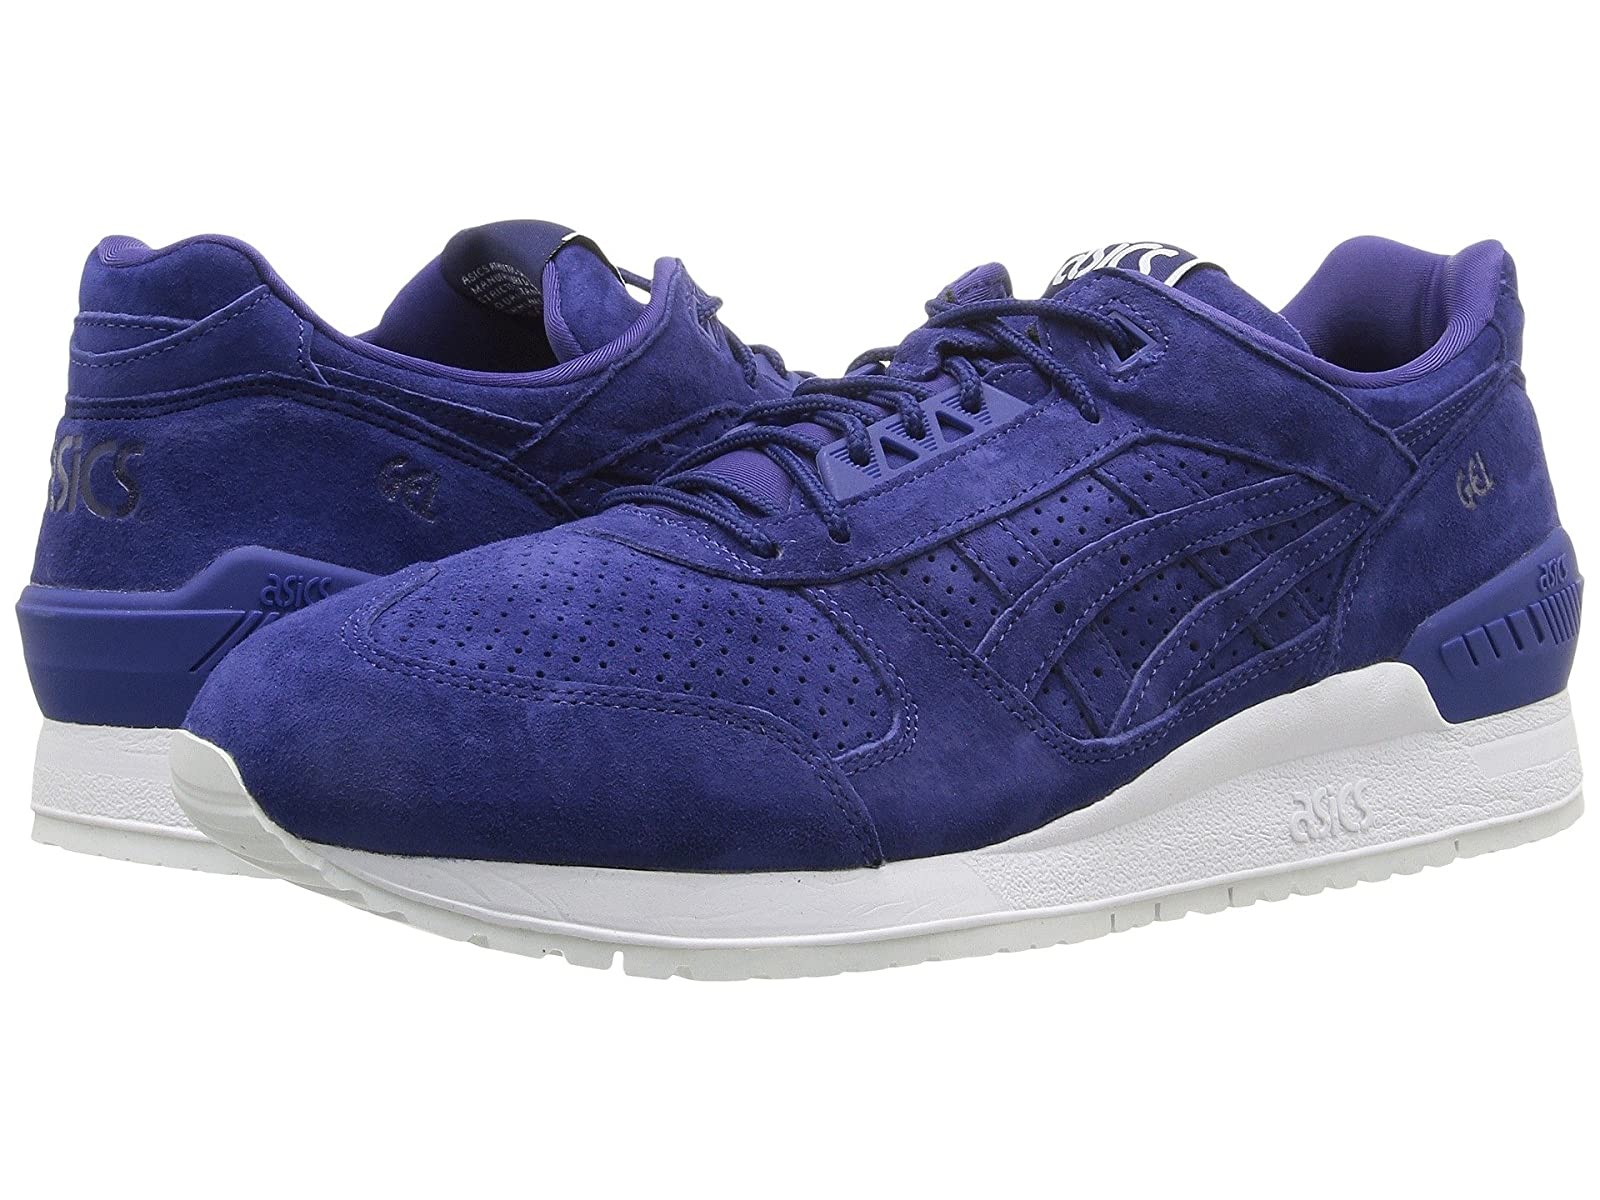 Onitsuka Tiger by Asics Gel-RespectorCheap and distinctive eye-catching shoes